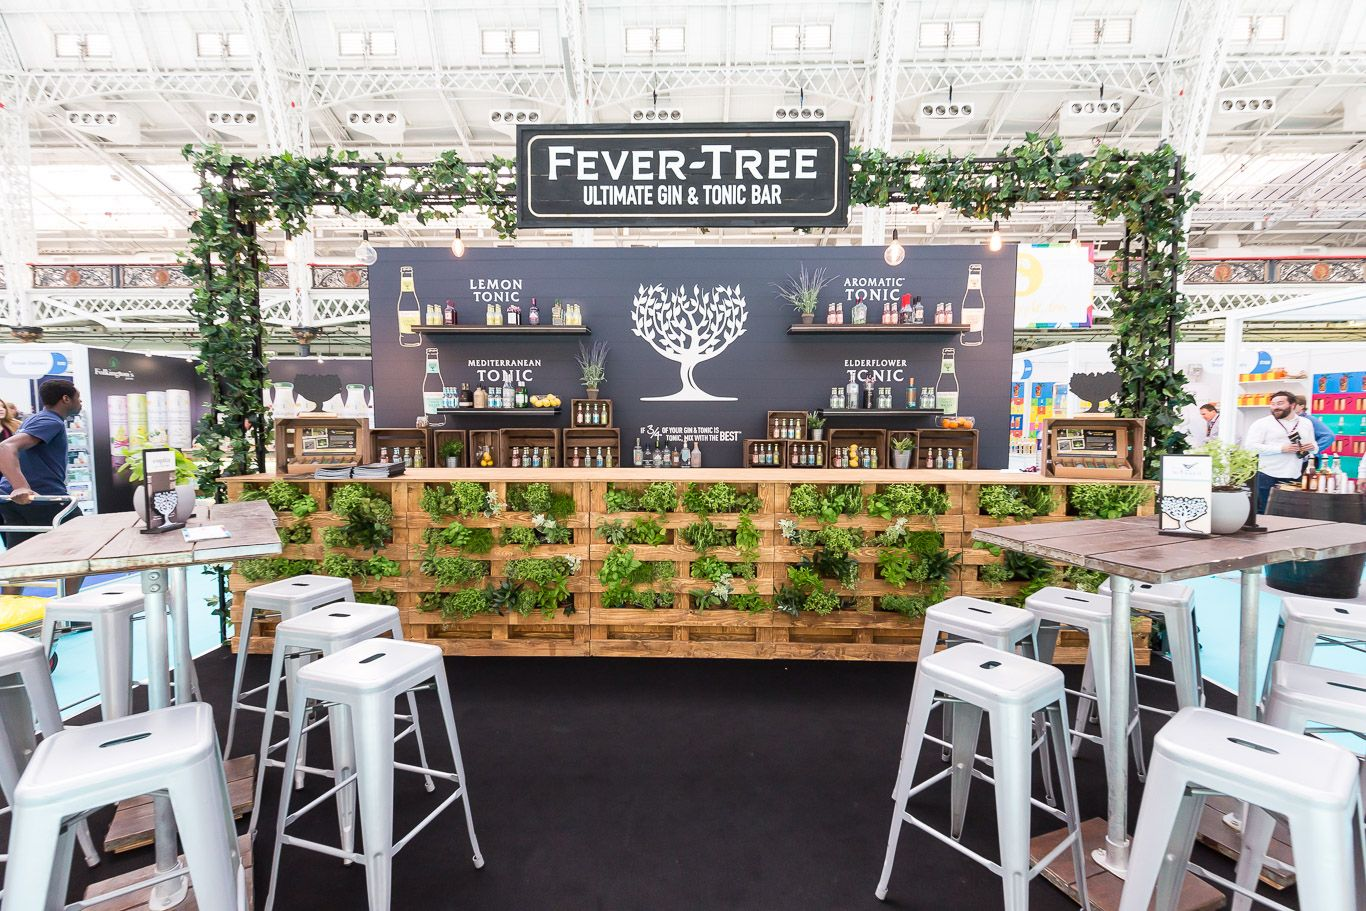 Trade Stands Hickstead : Image result for trade stand imbibe ☆ exhibit design